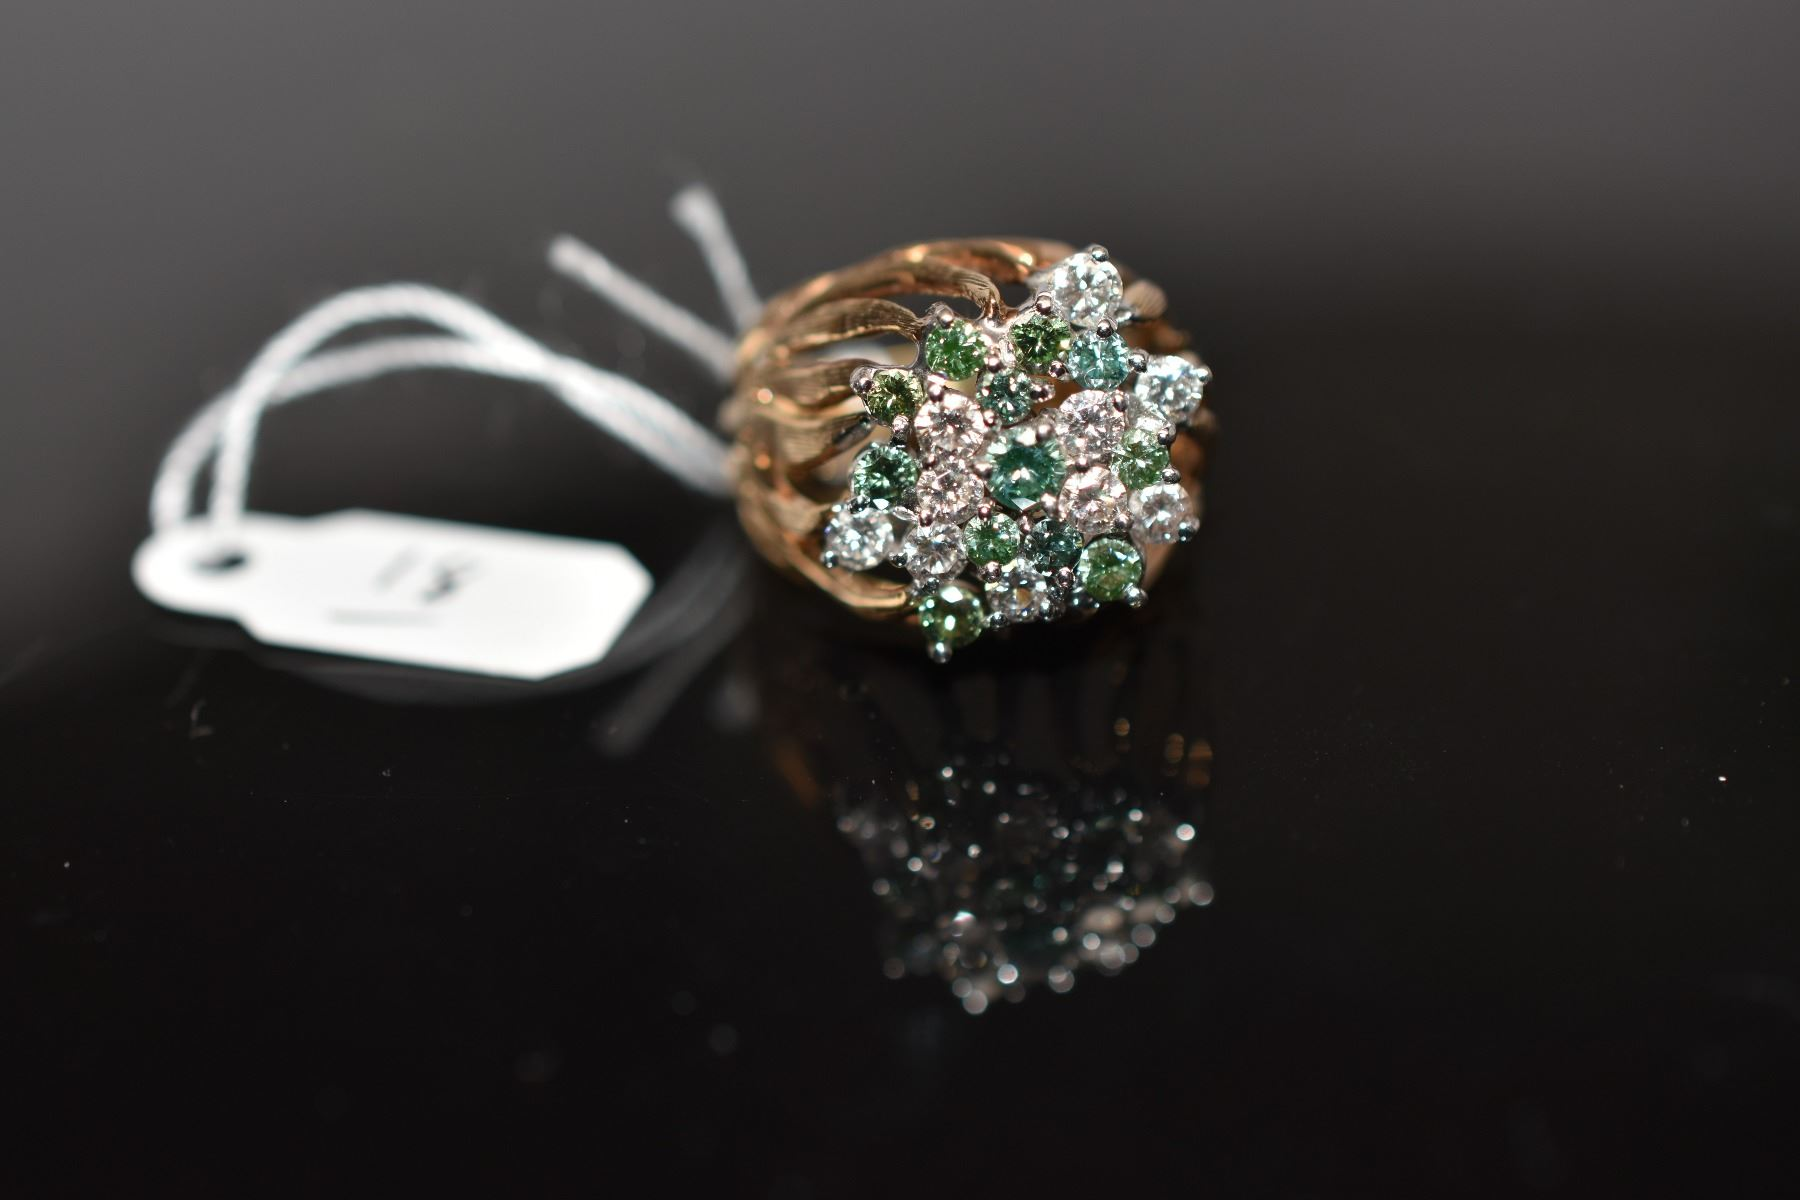 green irradiated diamonds igr the detail blog diamond